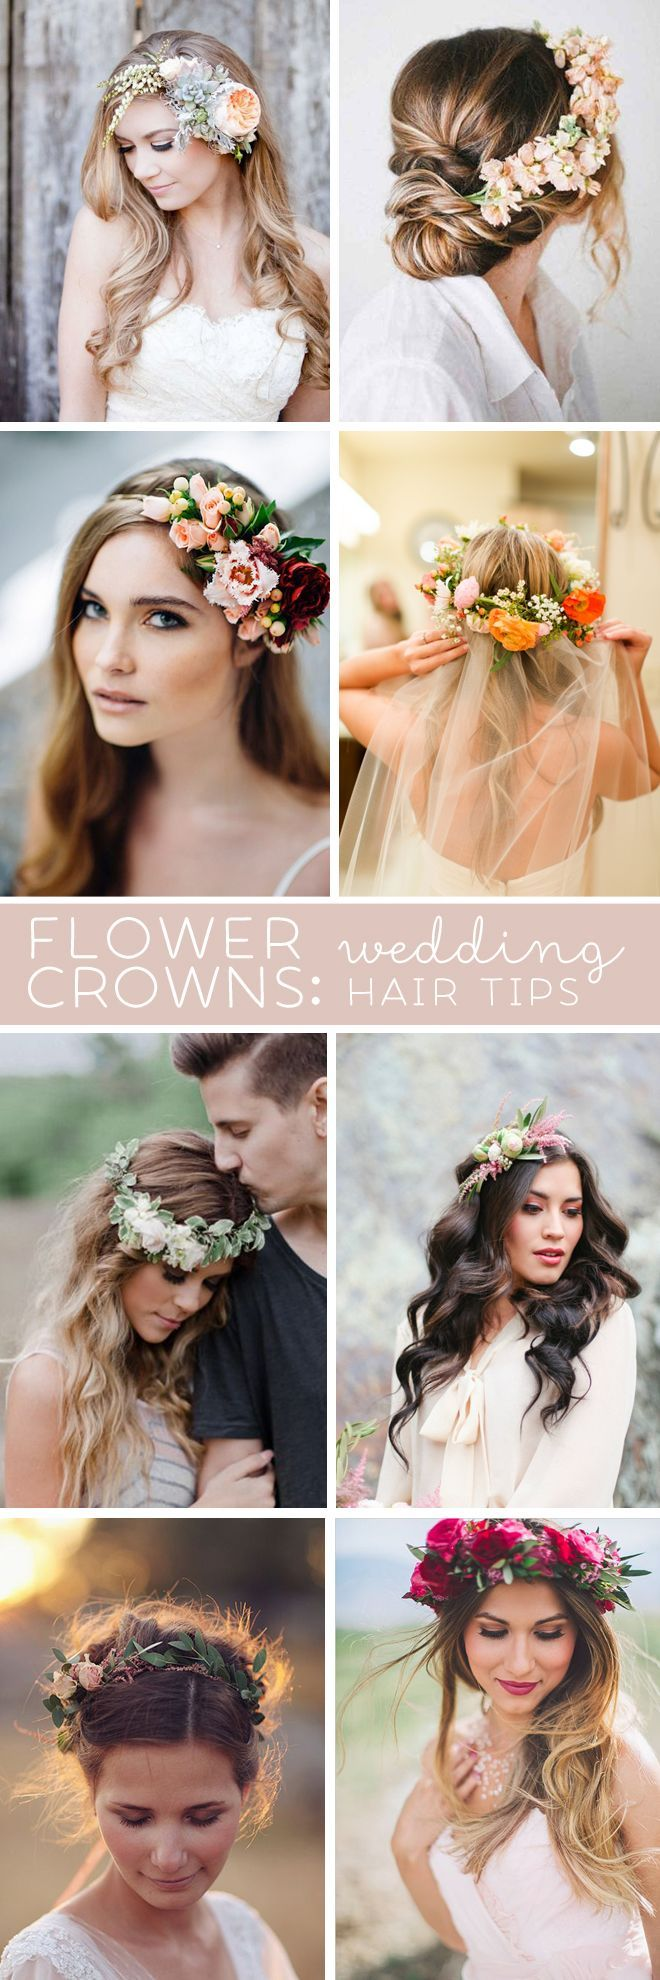 //Awesome wedding hair tips for wearing flower crowns! #weddings #floral #hair-style http://somethingturquoise.com/2015/06/09/wedding-hair-tips-for-flower-crowns/  [Solution 4U] 카지노 사이트 제작/ 영상공급/ 게임 개발 스카이프 : casinopower4 , 카카오톡 : casinopower4 텔레그램 : solution4u , 큐큐 : 3393204647